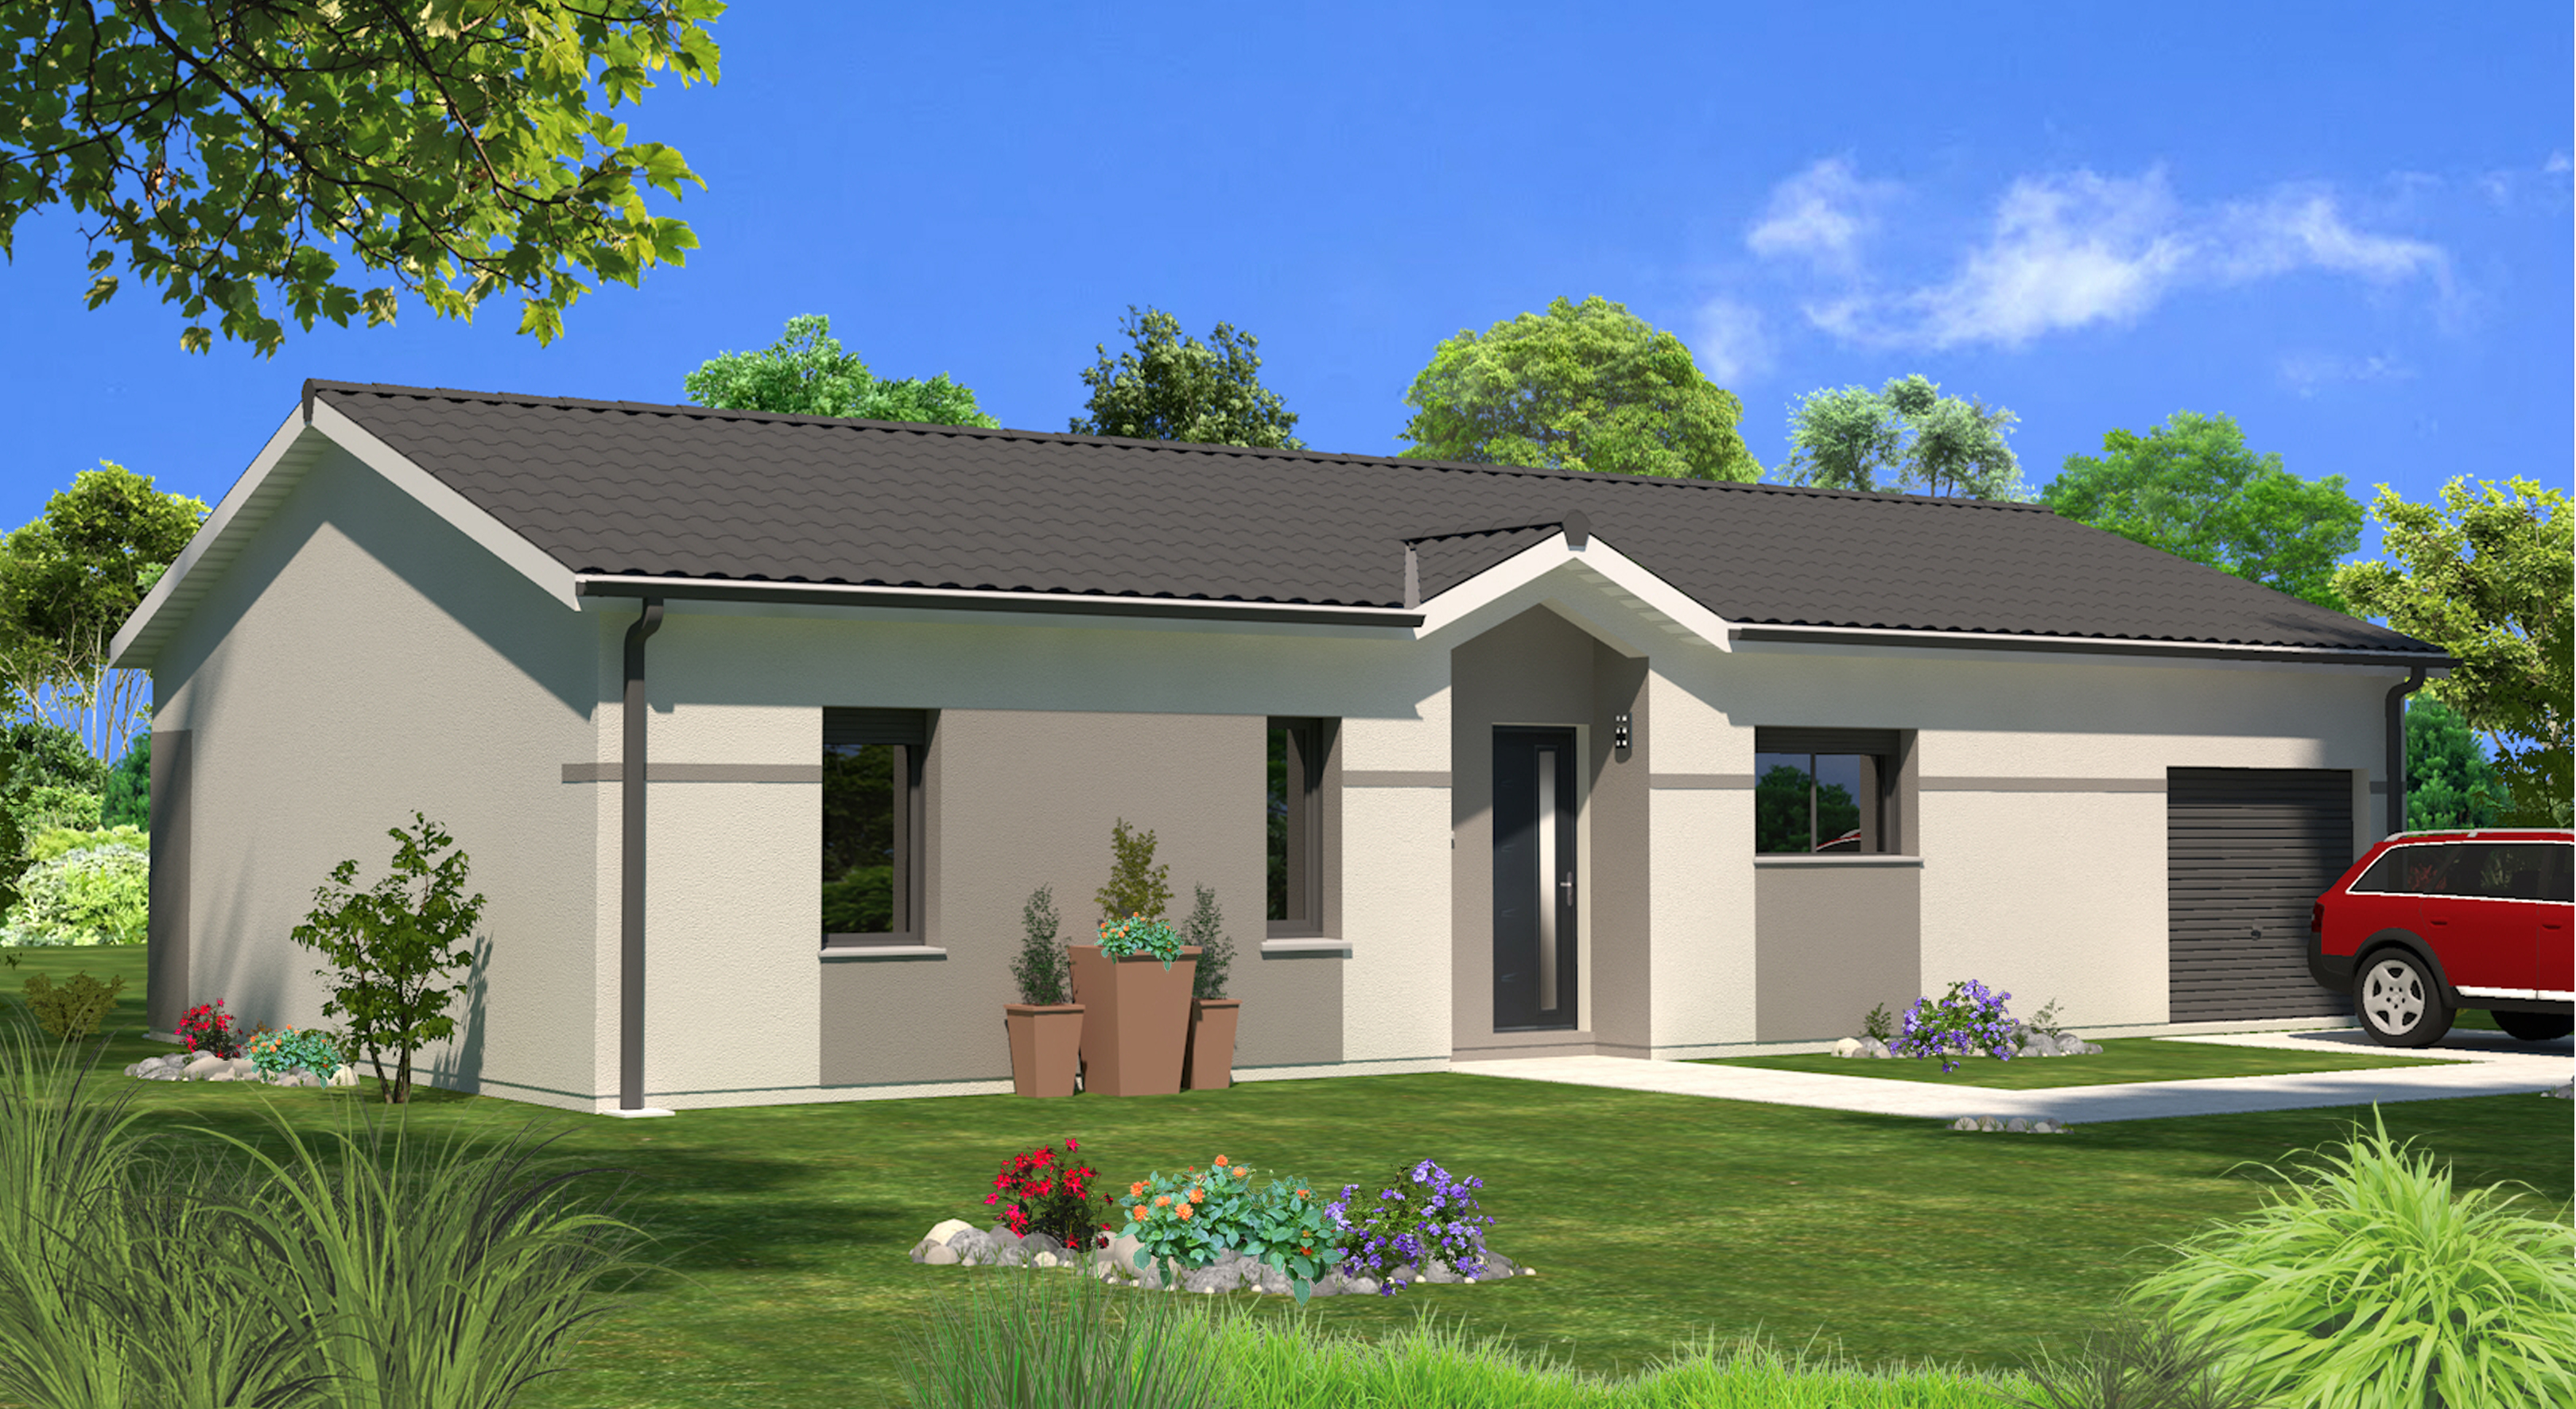 Maison contemporaine plain pied plan 140m2 maison moderne for Couleur facade maison plain pied